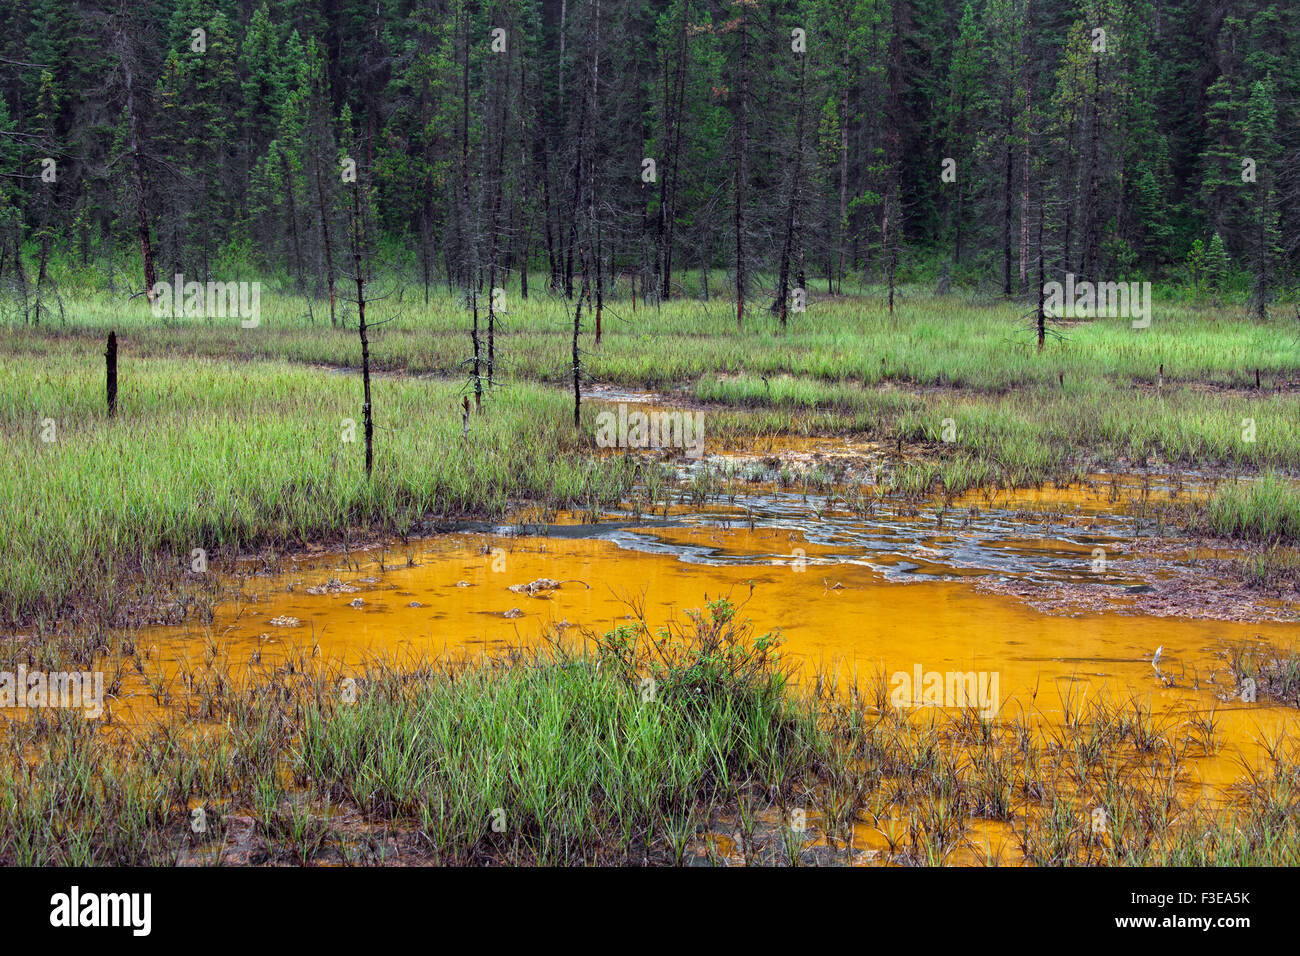 Paint Pots, iron-rich cold mineral springs in the Kootenay National Park, British Columbia, Canada - Stock Image